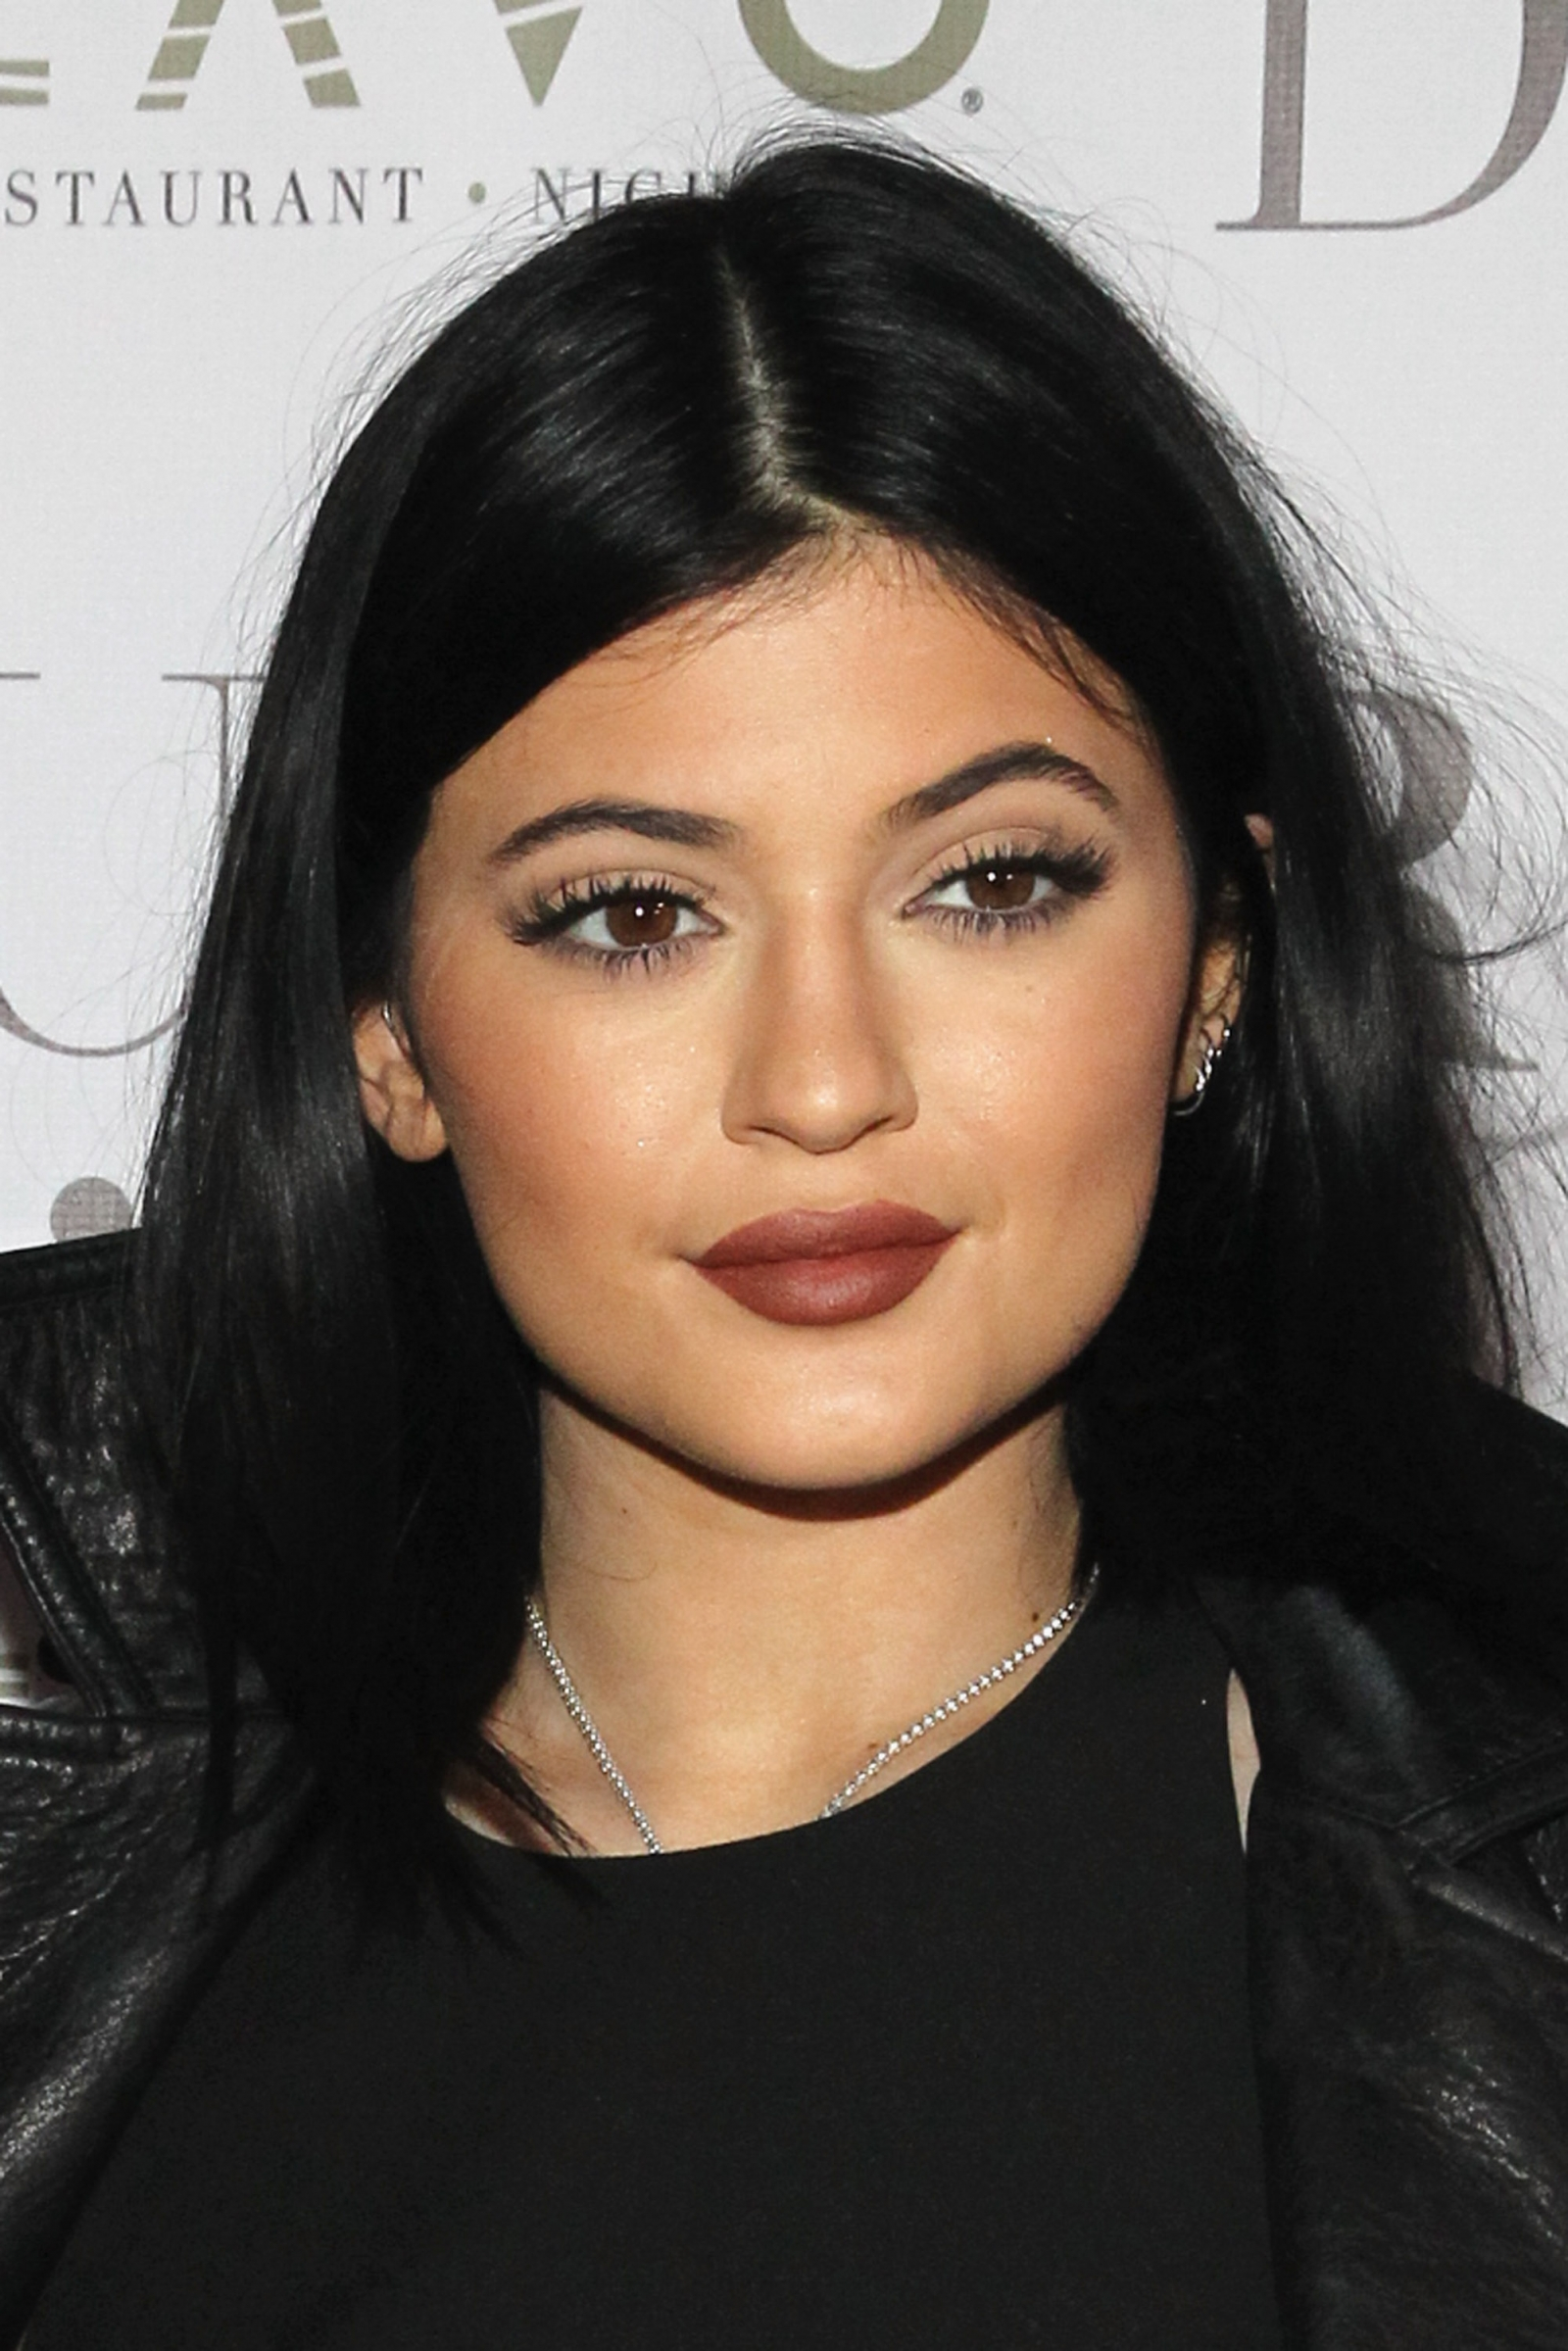 Kylie Jenner Depressed: Is Kylie Jenner The New Katy Perry? Reality Star Wants To